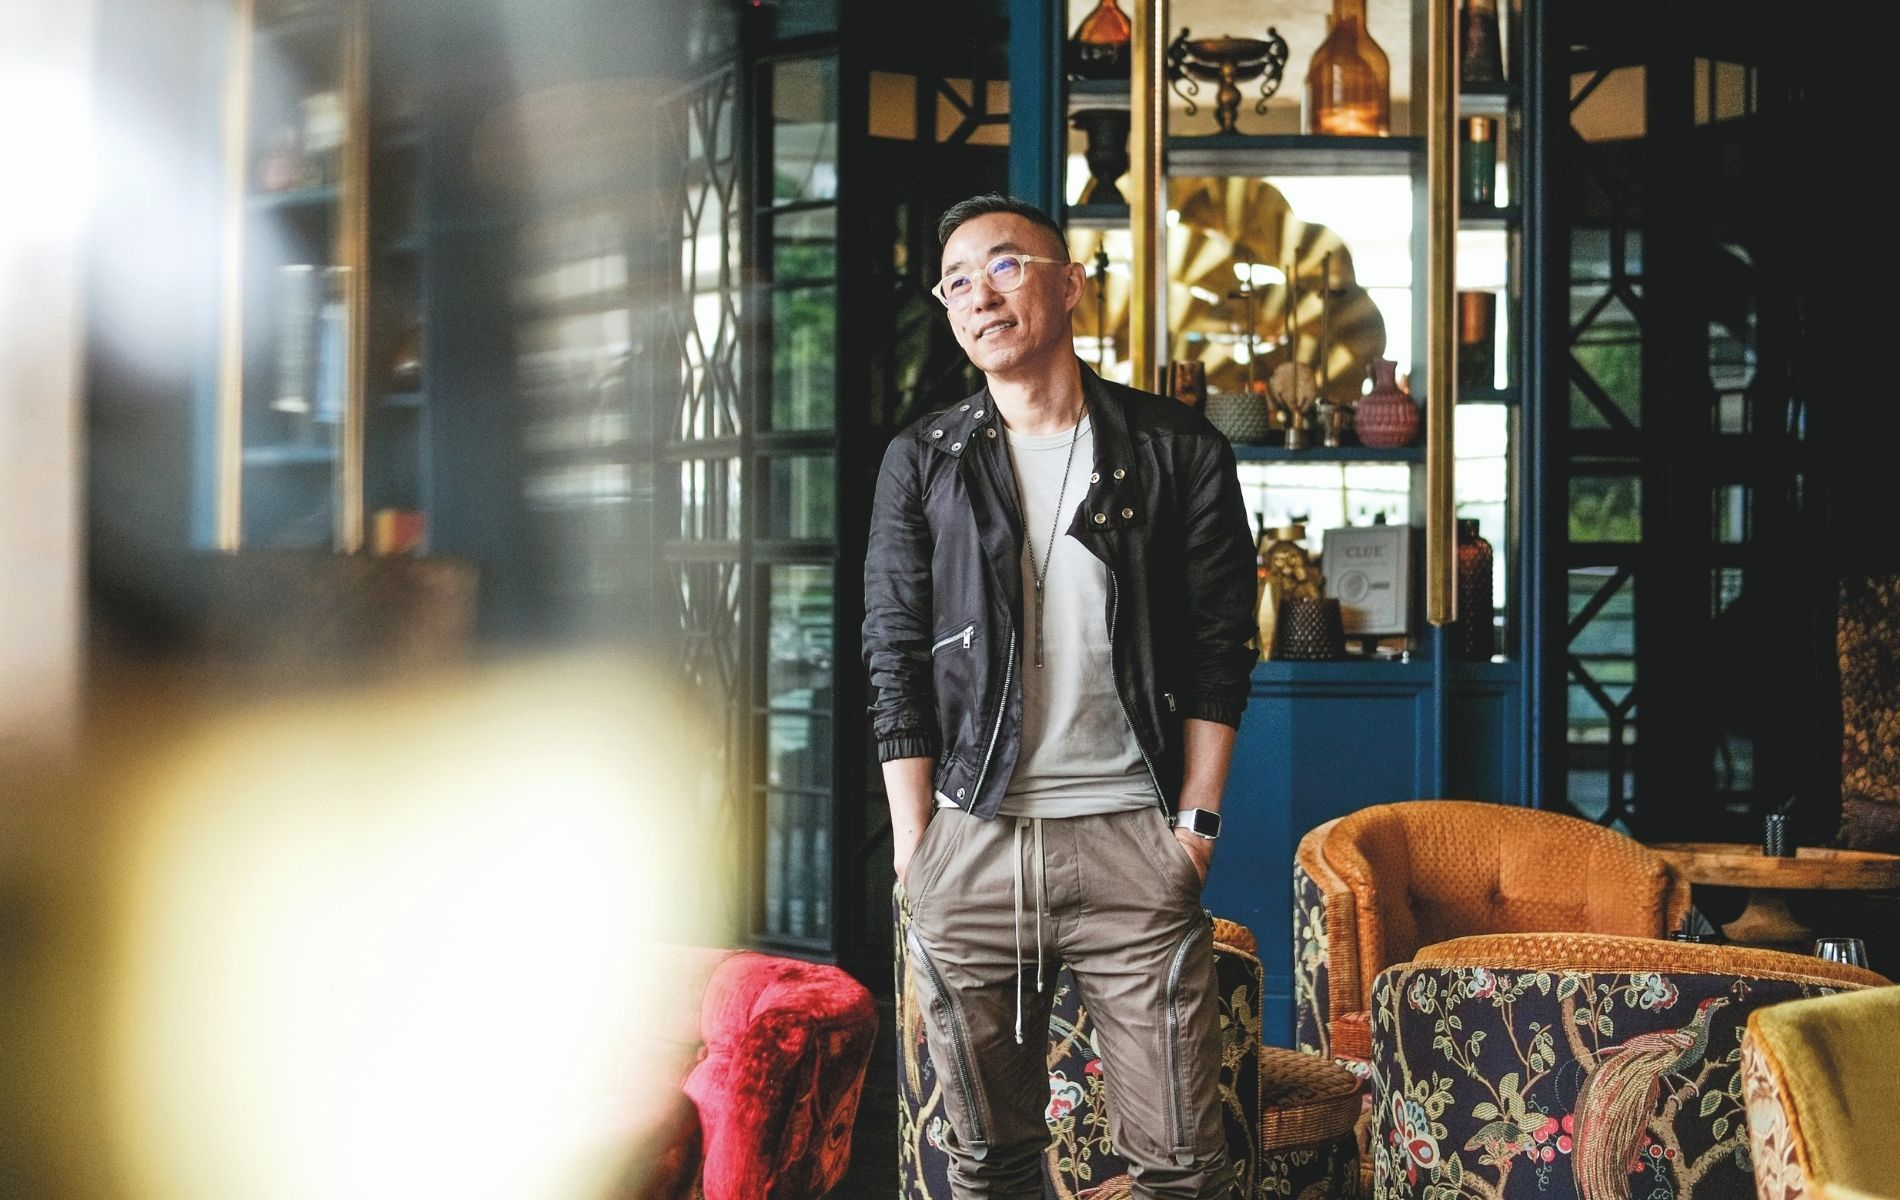 Restaurateur Andrew Wong Talks About The Wonderfully Diverse Flavours Of Malaysian Food